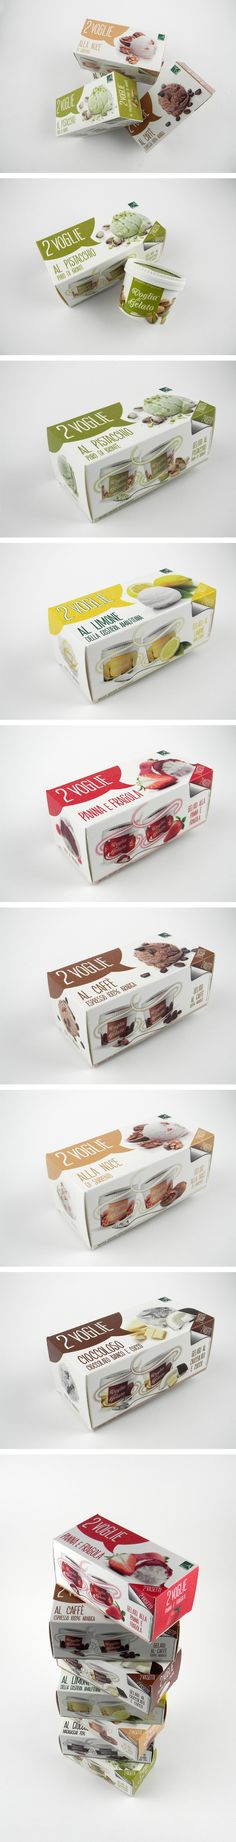 Package Design - 2Voglie is a line of Italy ice cream. The top and body of each package are decorated with simple, one color graphics, different for each flavor of the ice cream. It is subdivided among flavours of fruit sorbet and ice-cream.